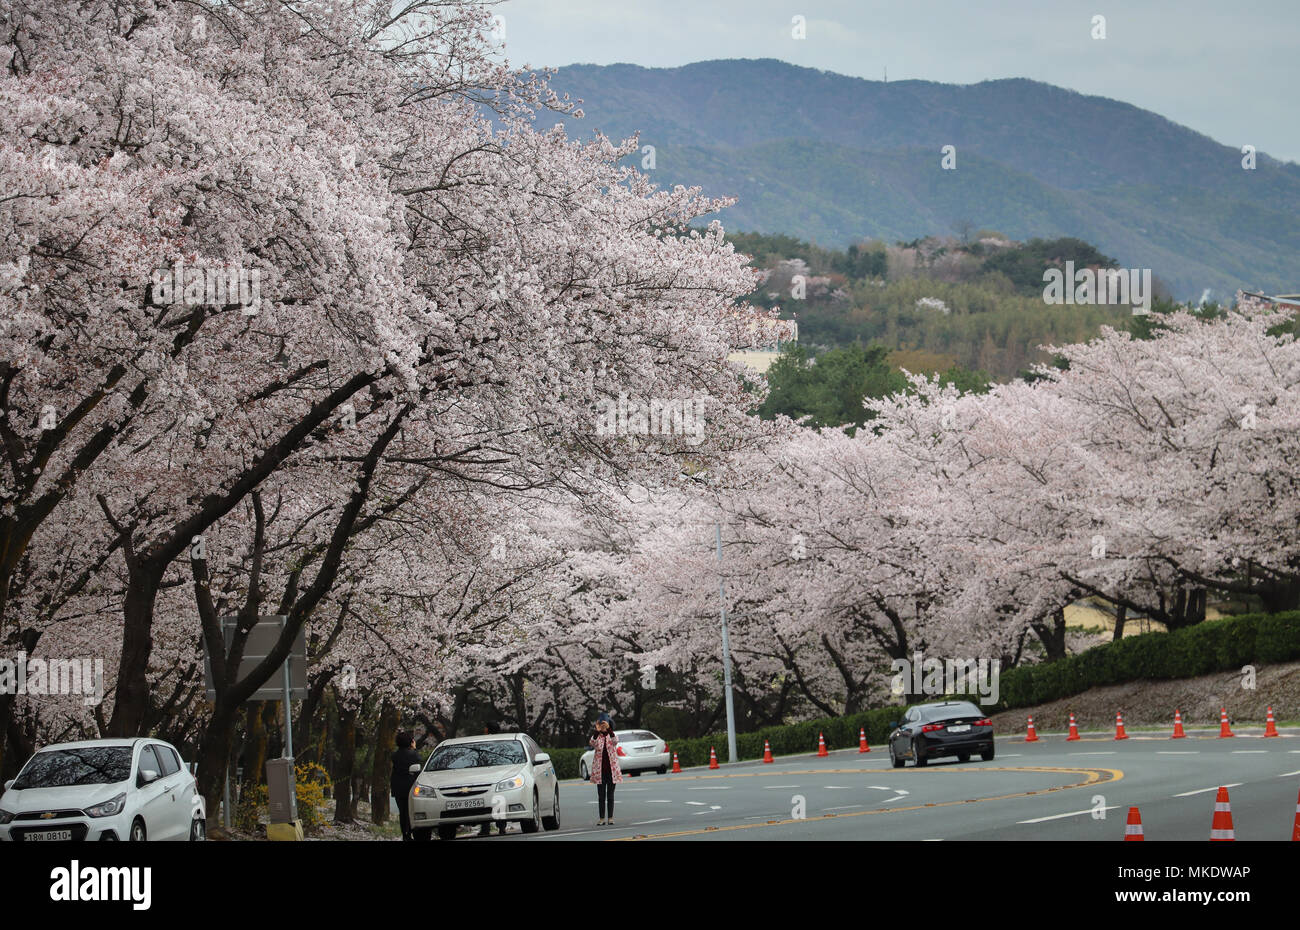 A woman stops to photograph huge cherry trees in full bloom on a roadside in Gyeongju,South Korea, at peak blossom season, with distant blue mountain Stock Photo